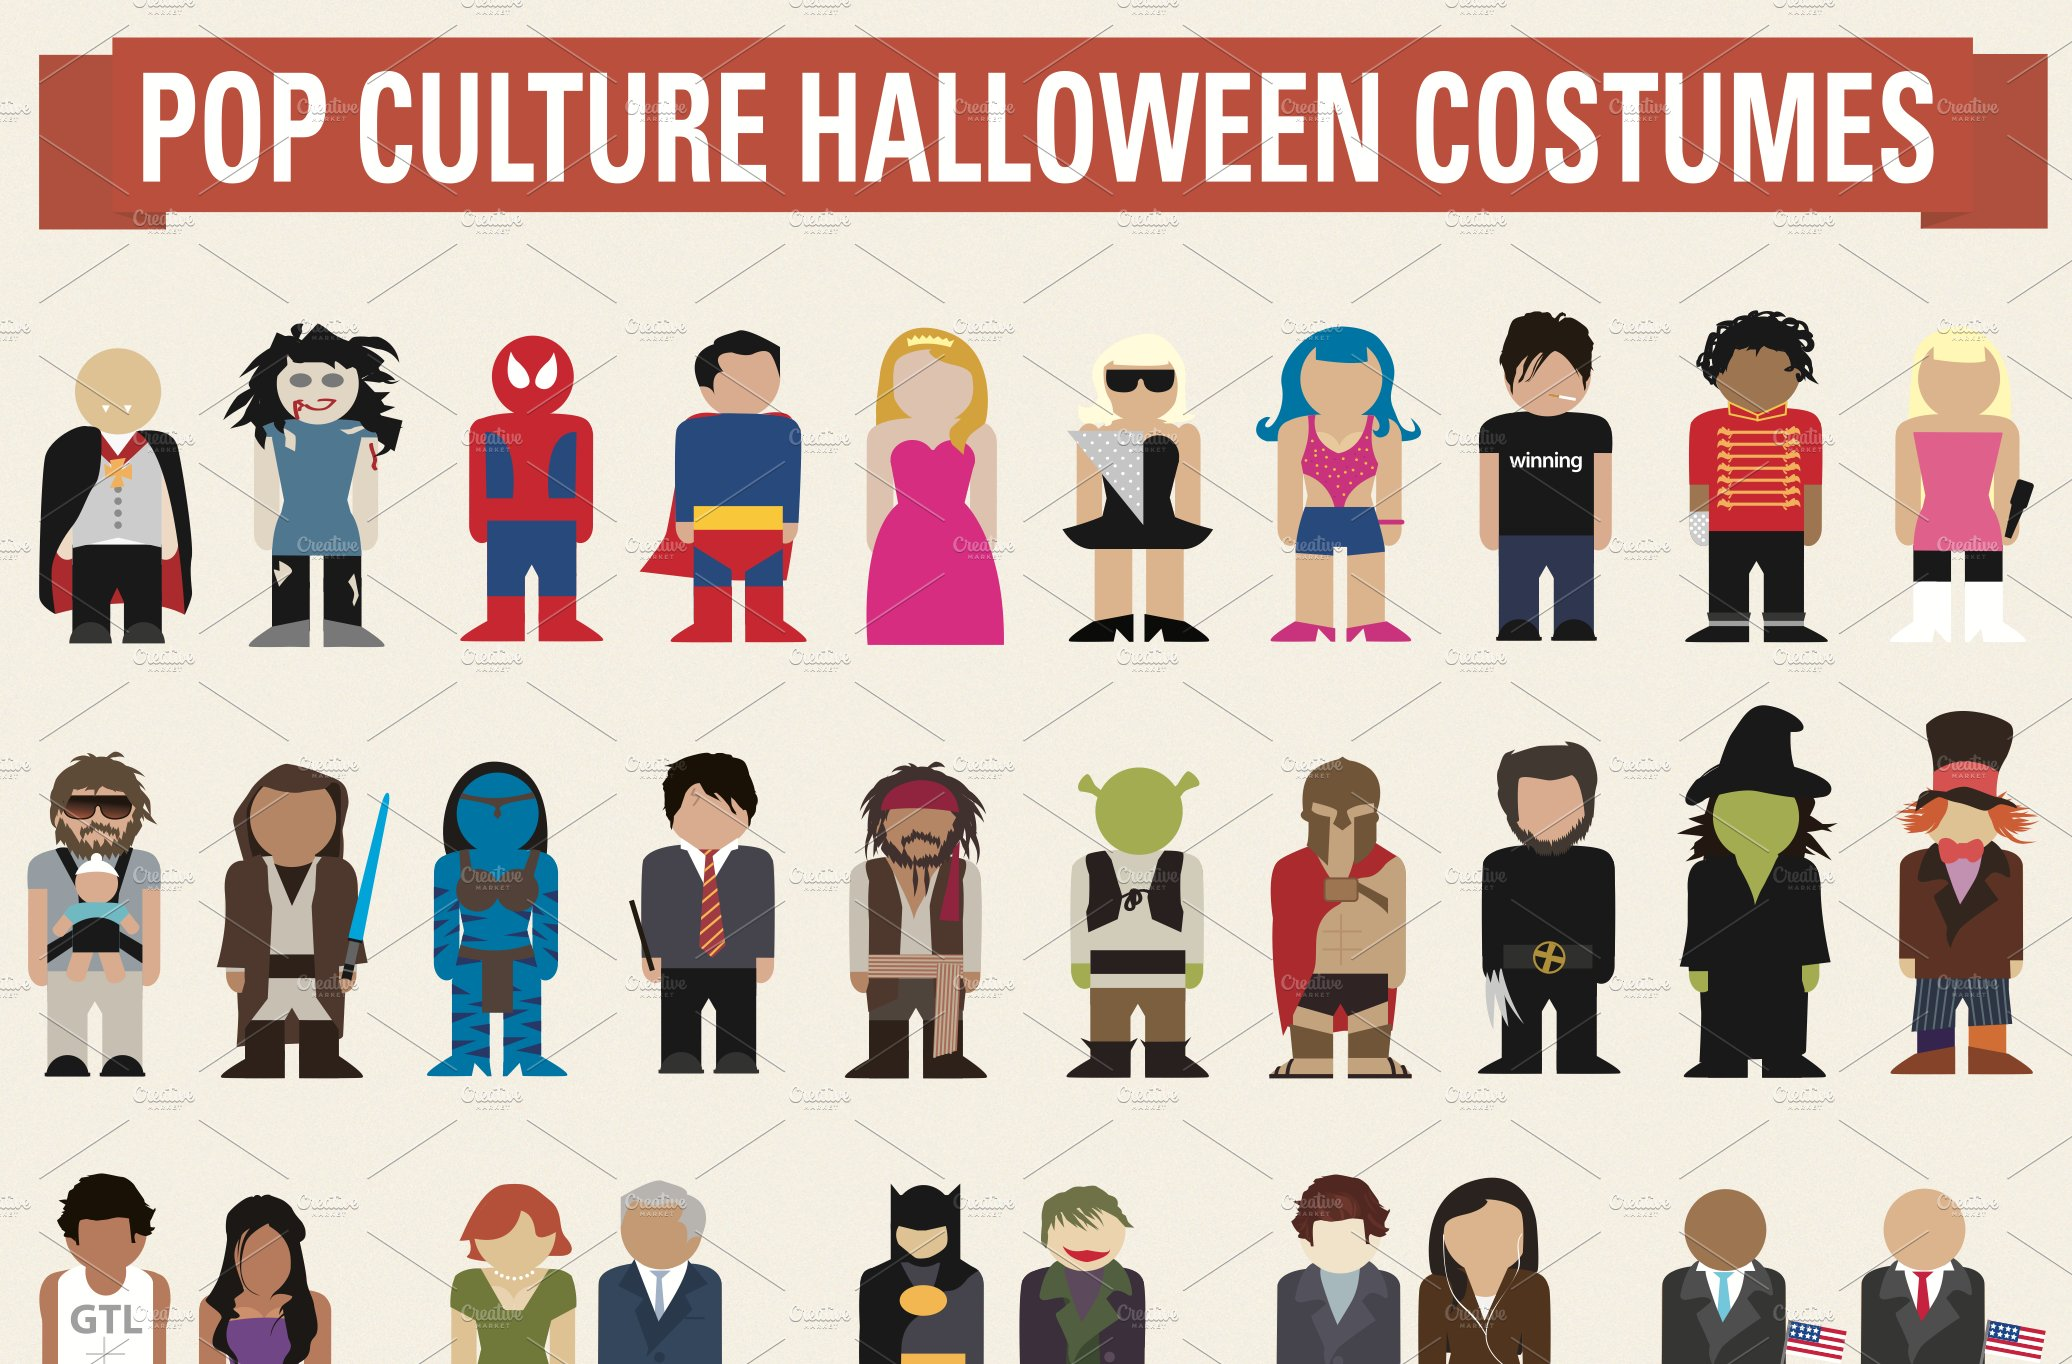 Halloween Pop Culture Costume Ideas Illustrations Creative Market